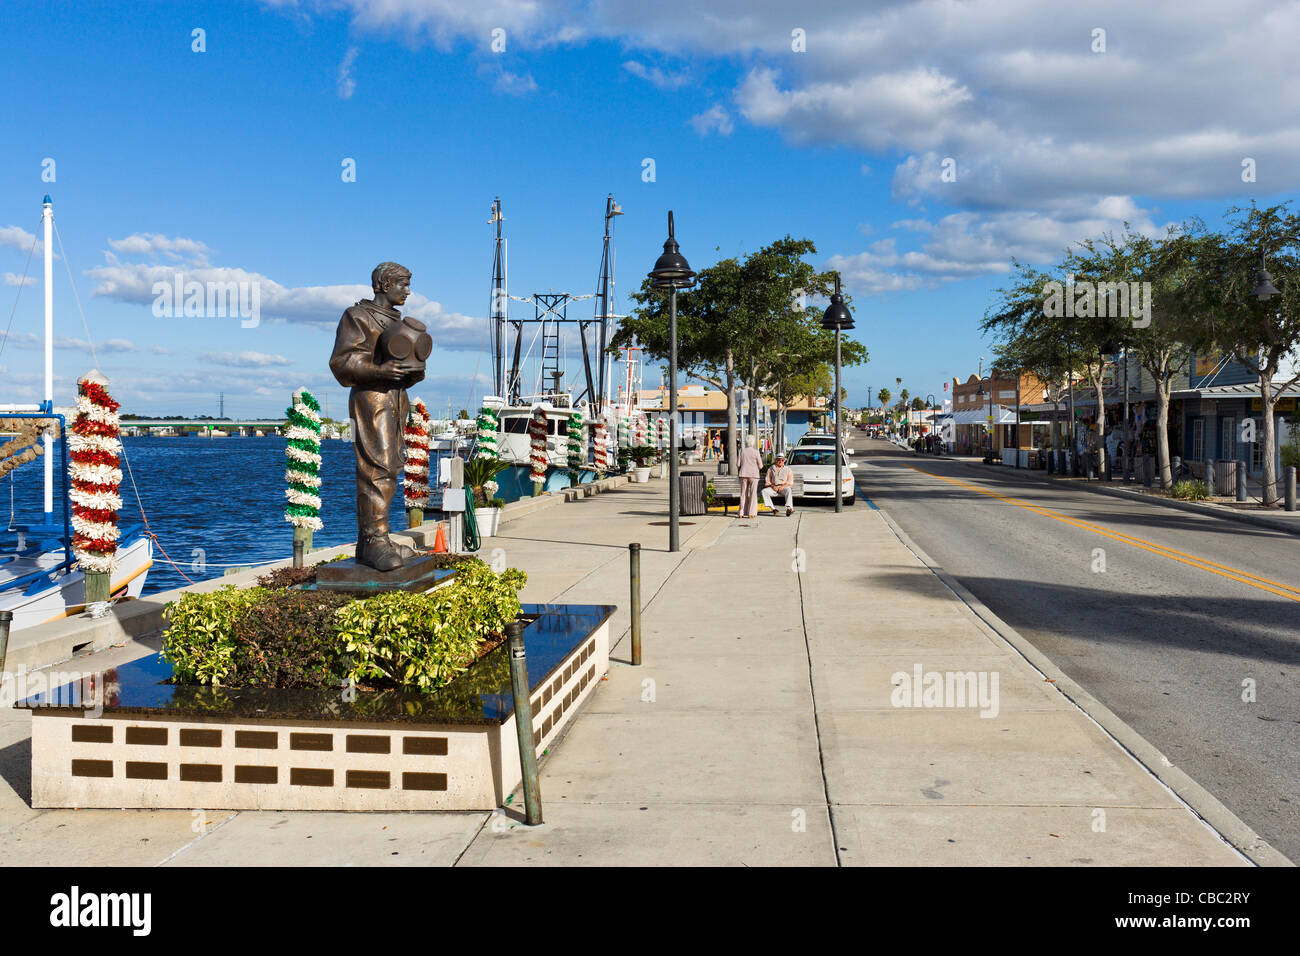 The waterfront at the Sponge Docks with statue of a diver in the foreground, Dodecanese Boulevard, Tarpon Springs, - Stock Image